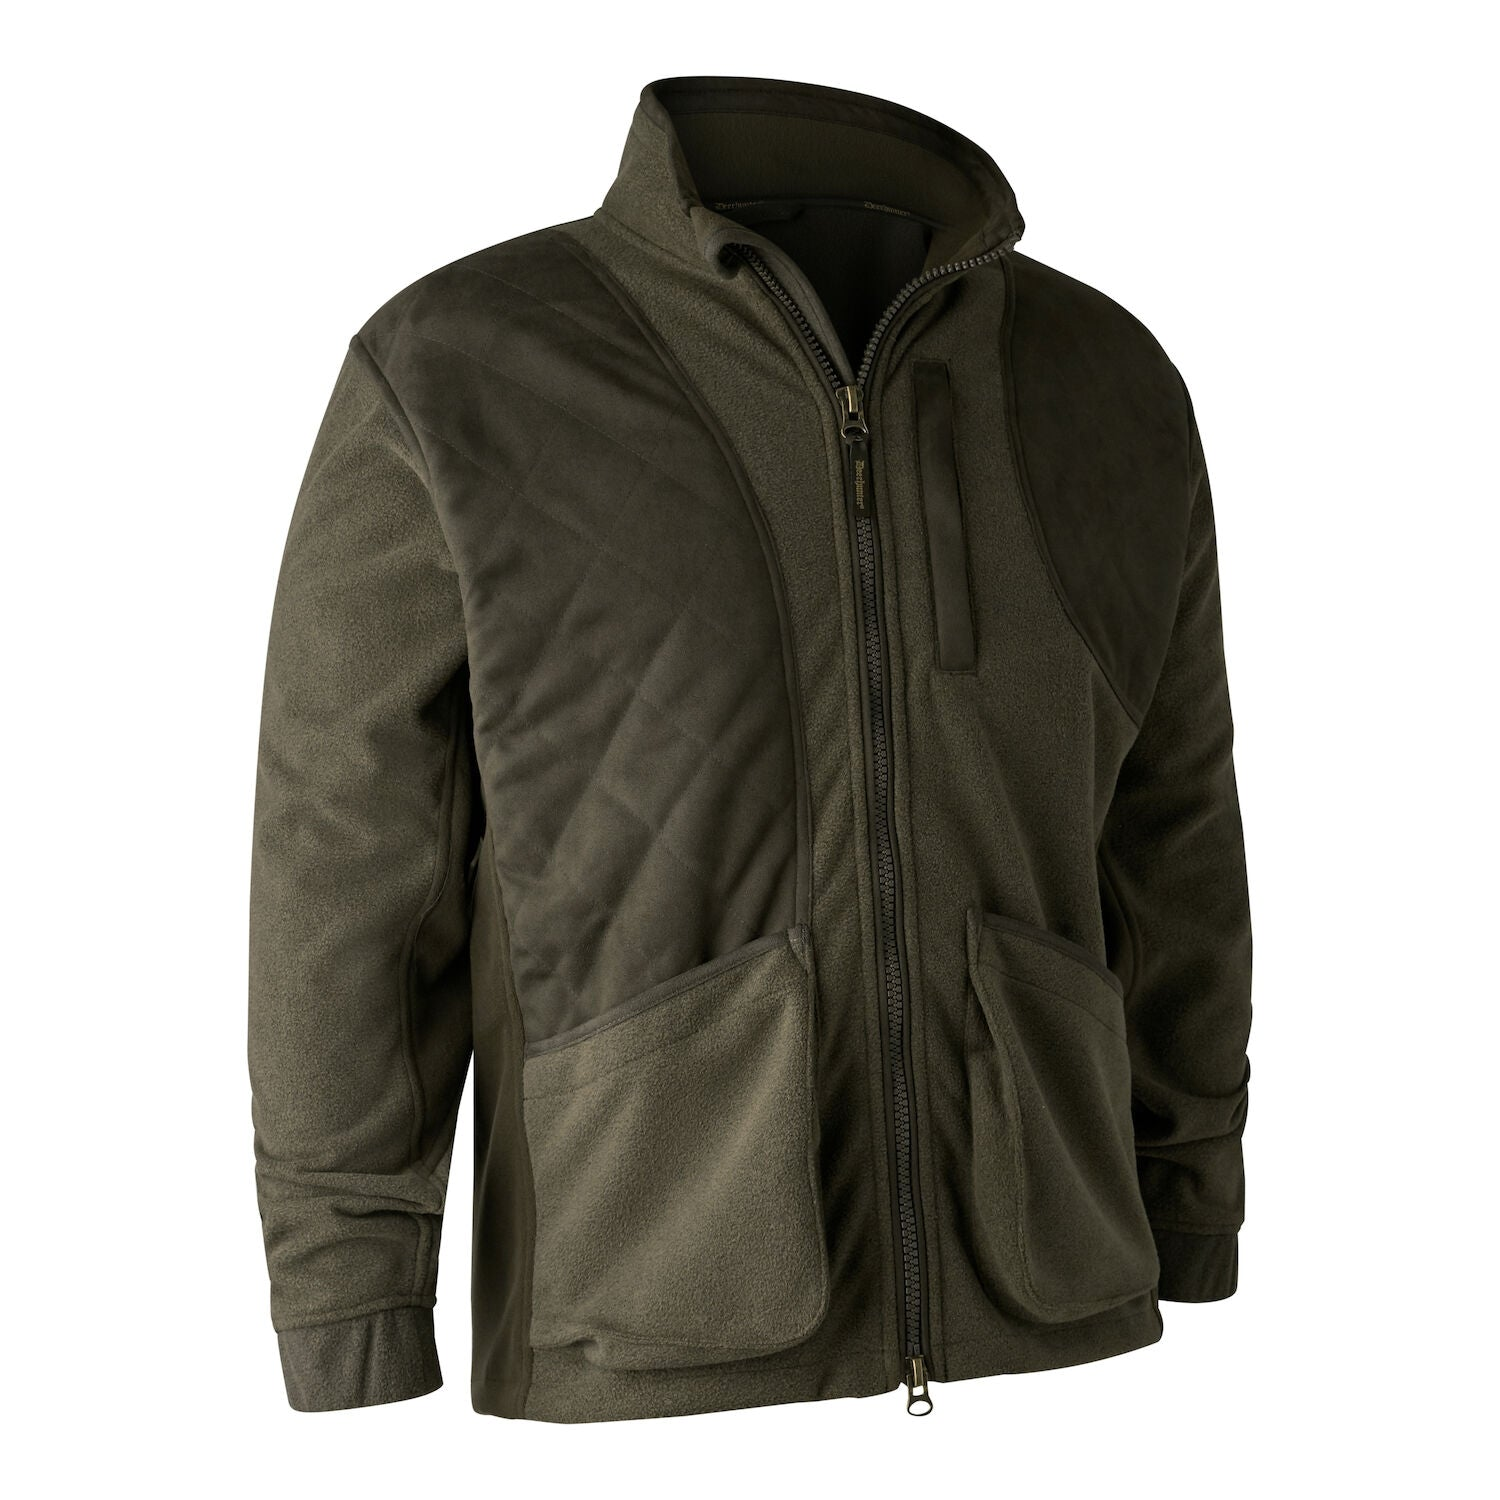 Gamekeeper Shooting Jacket -Graphite Green Melange